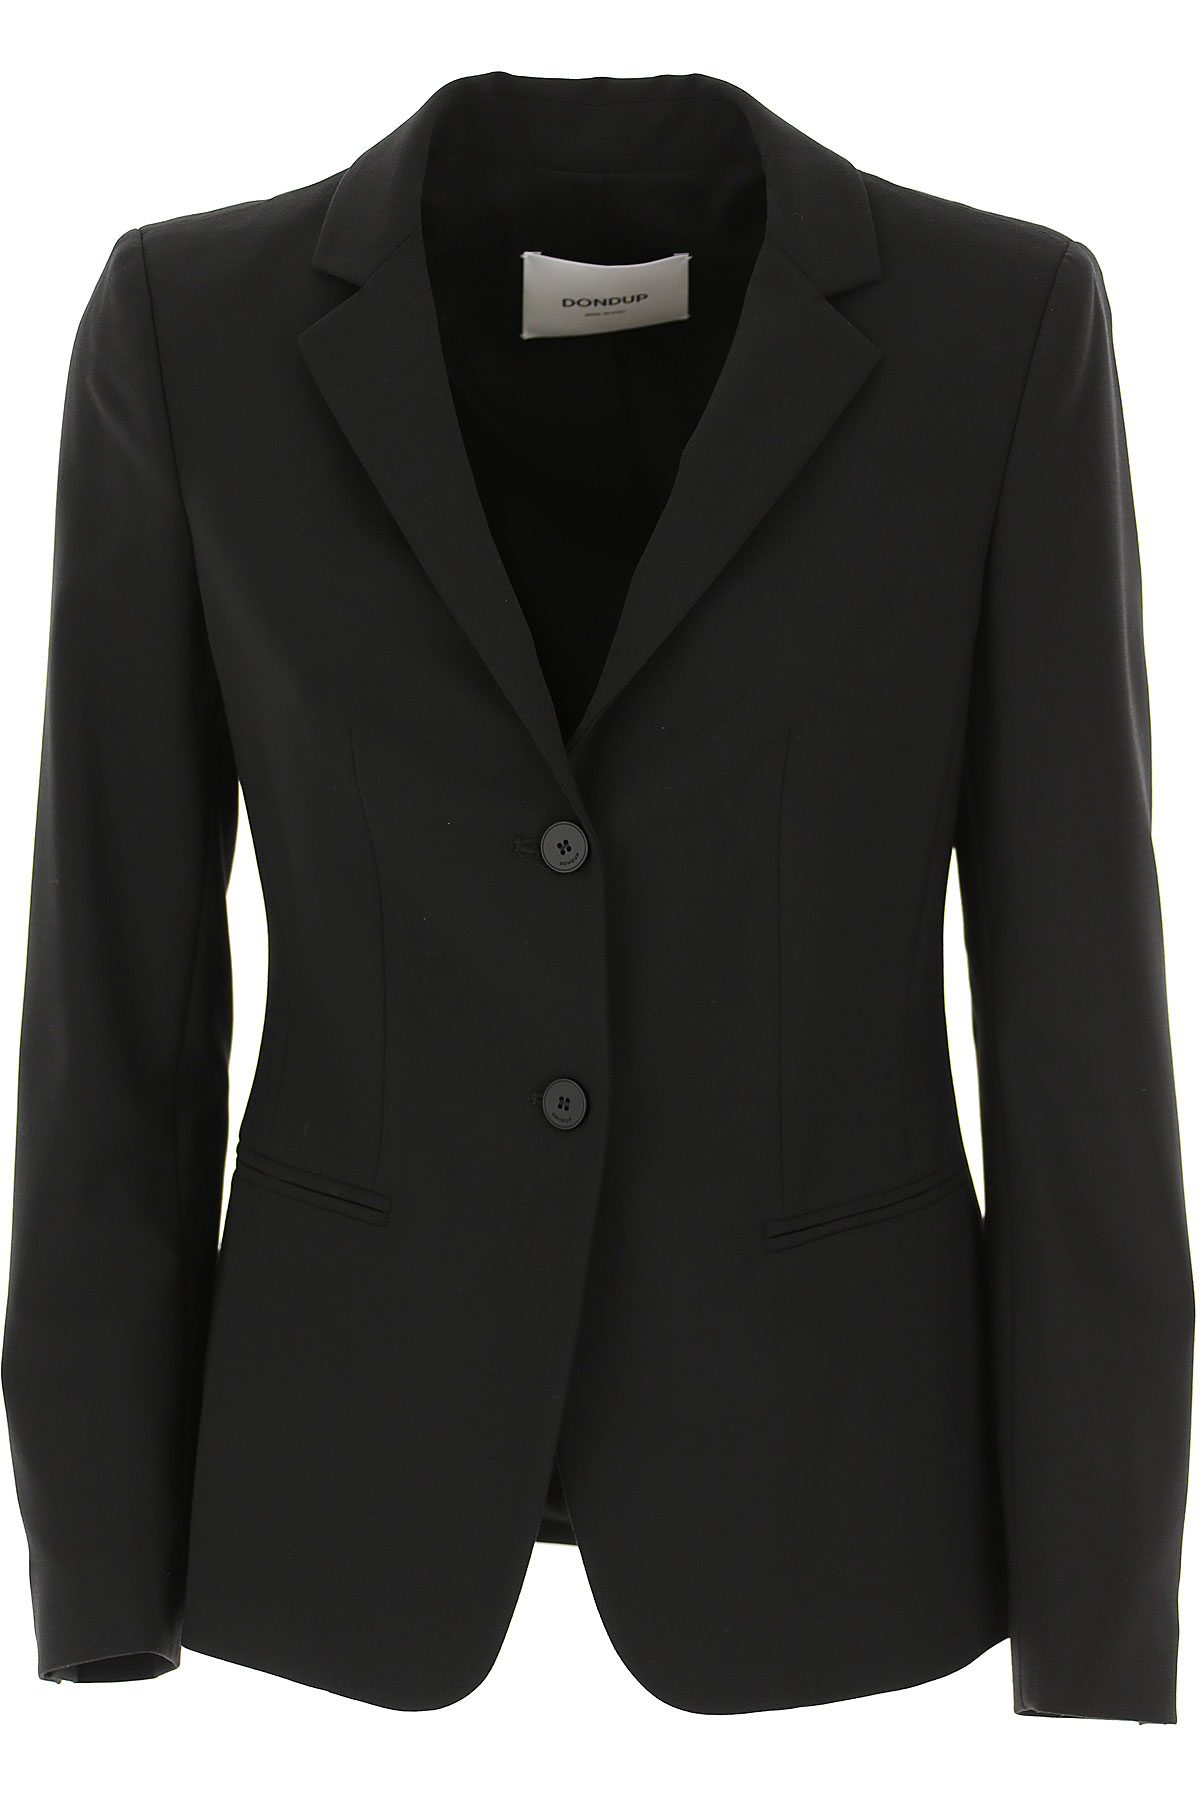 Dondup Blazer for Women On Sale, Black, polyestere, 2019, 4 6 8